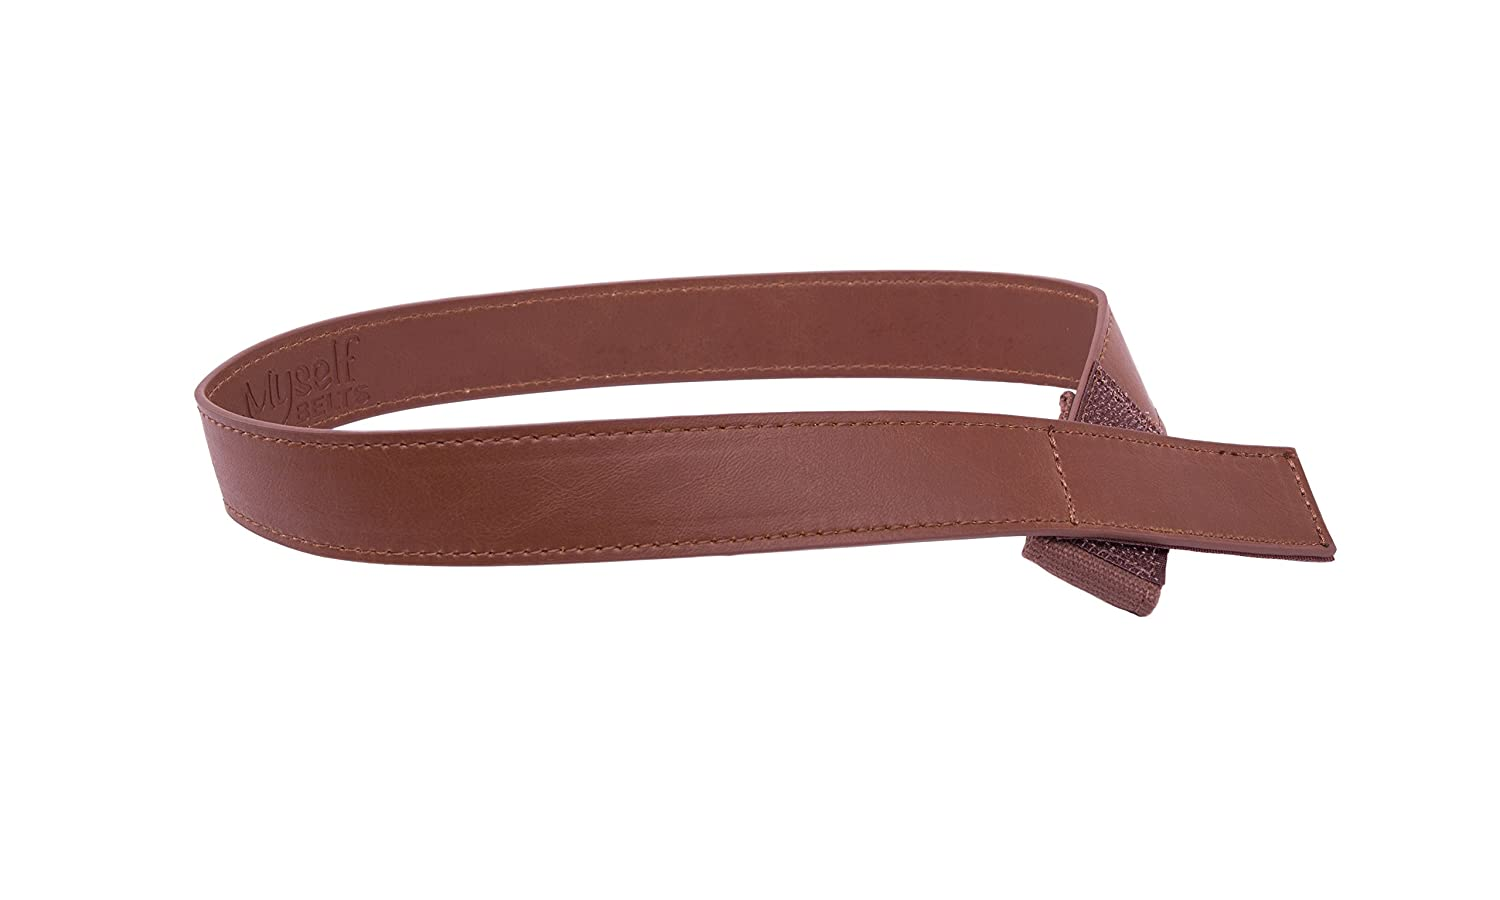 Myself Belts - Leather Blend Easy Belt for kids and toddlers